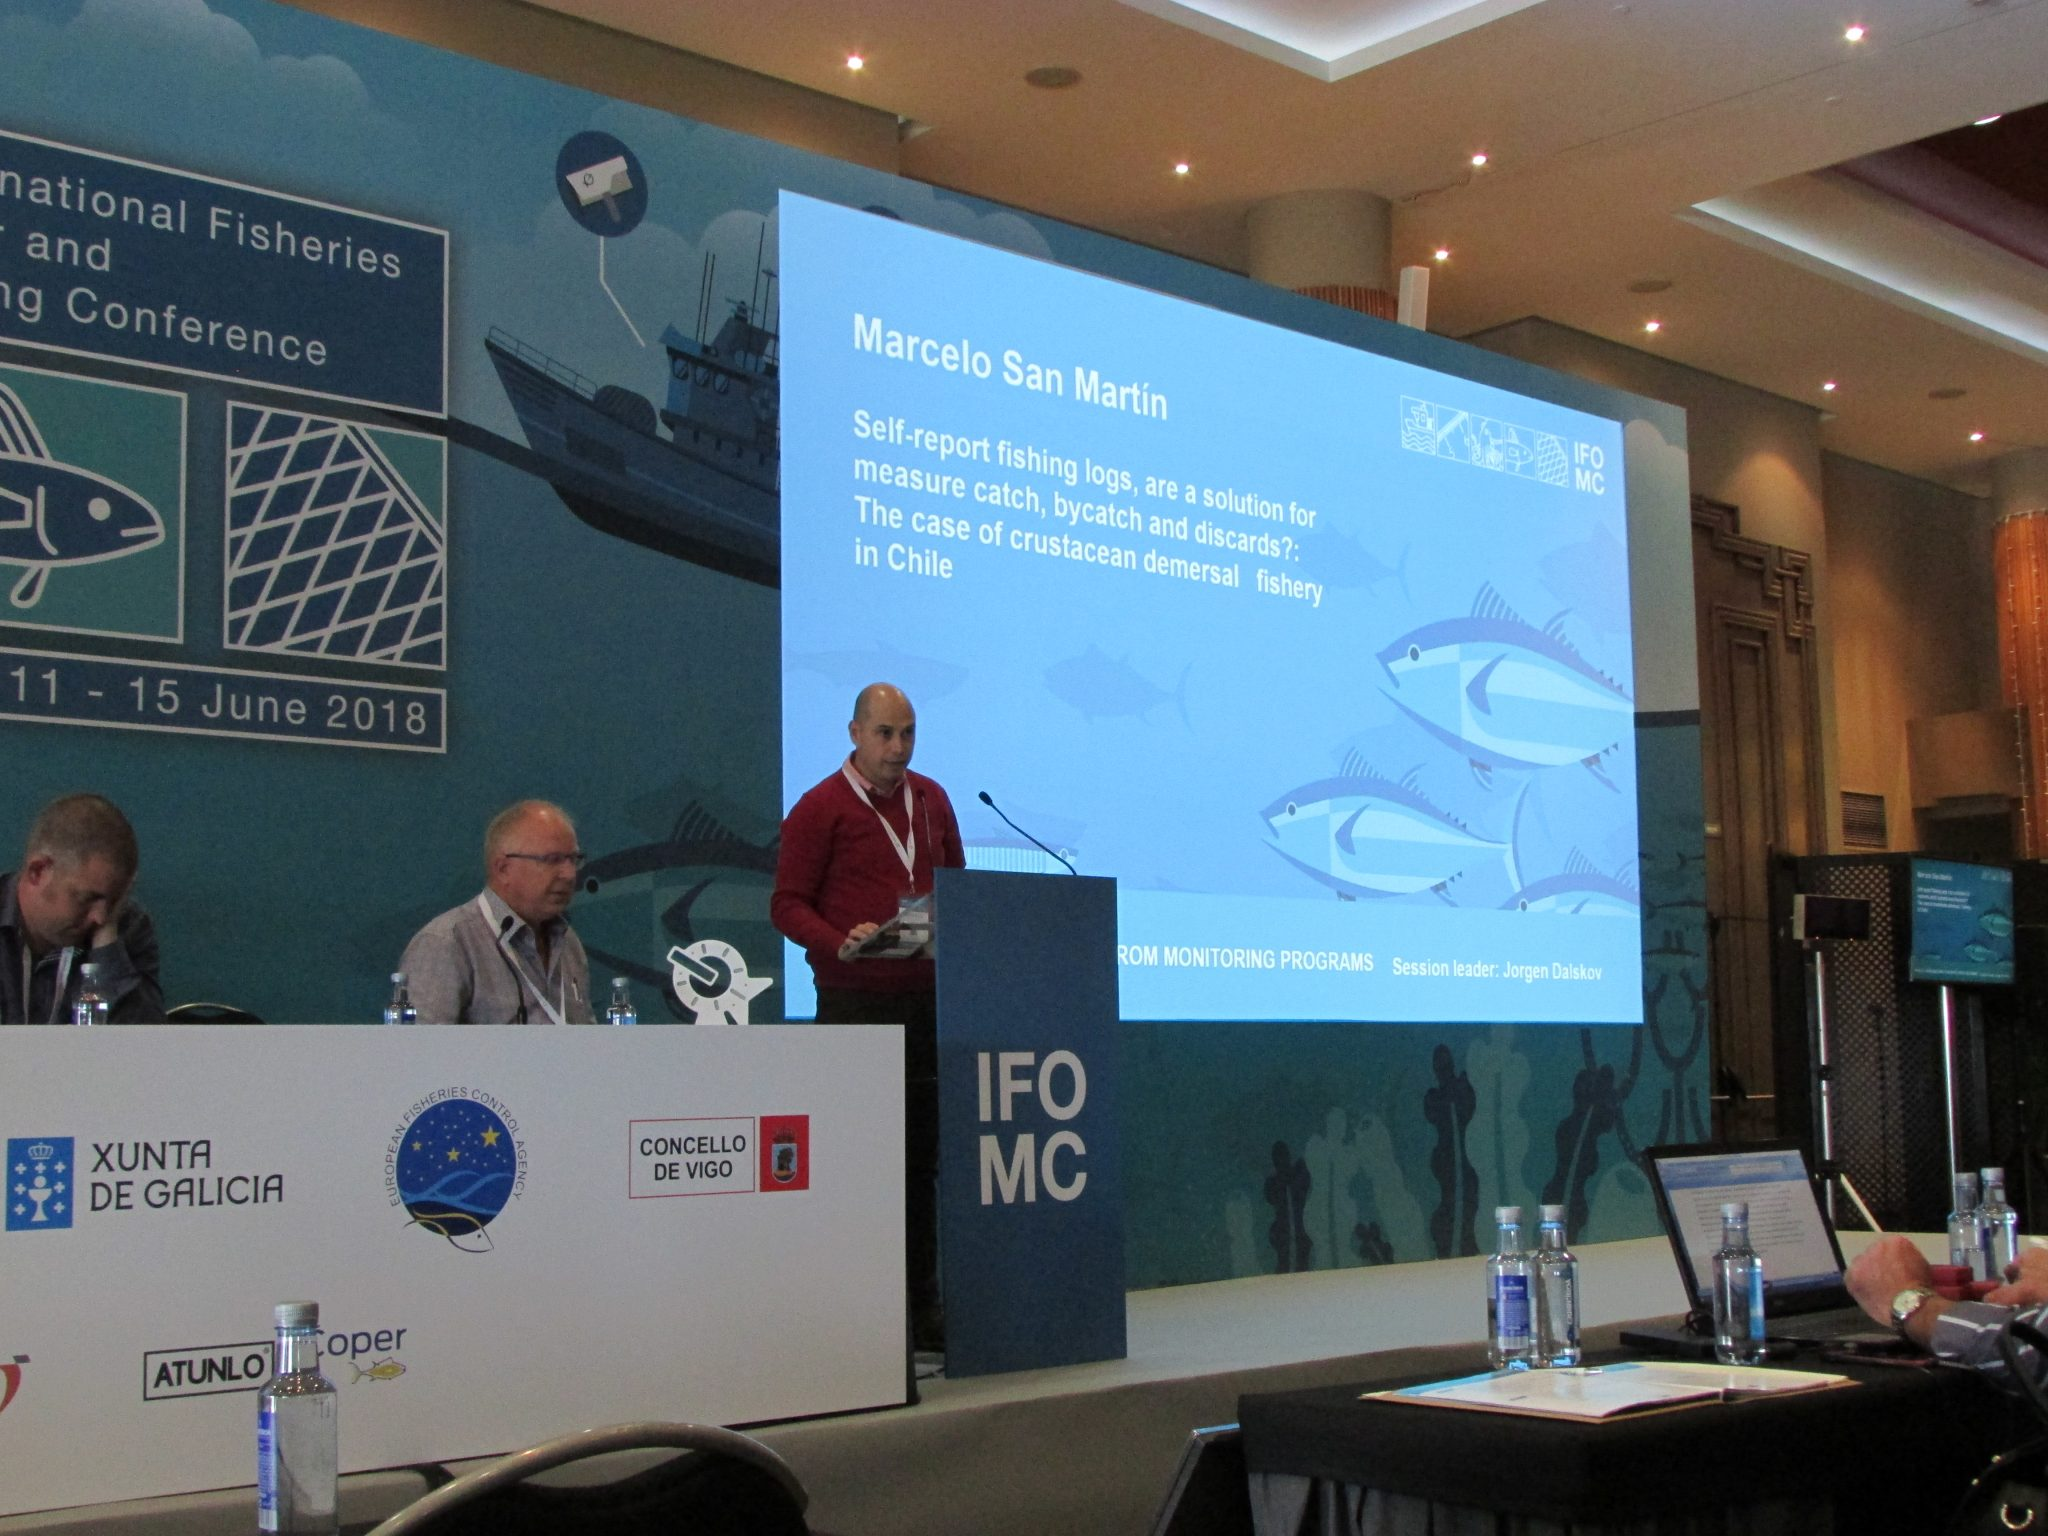 Subpesca and IFOP are participating in international fisheries observation and monitoring conference